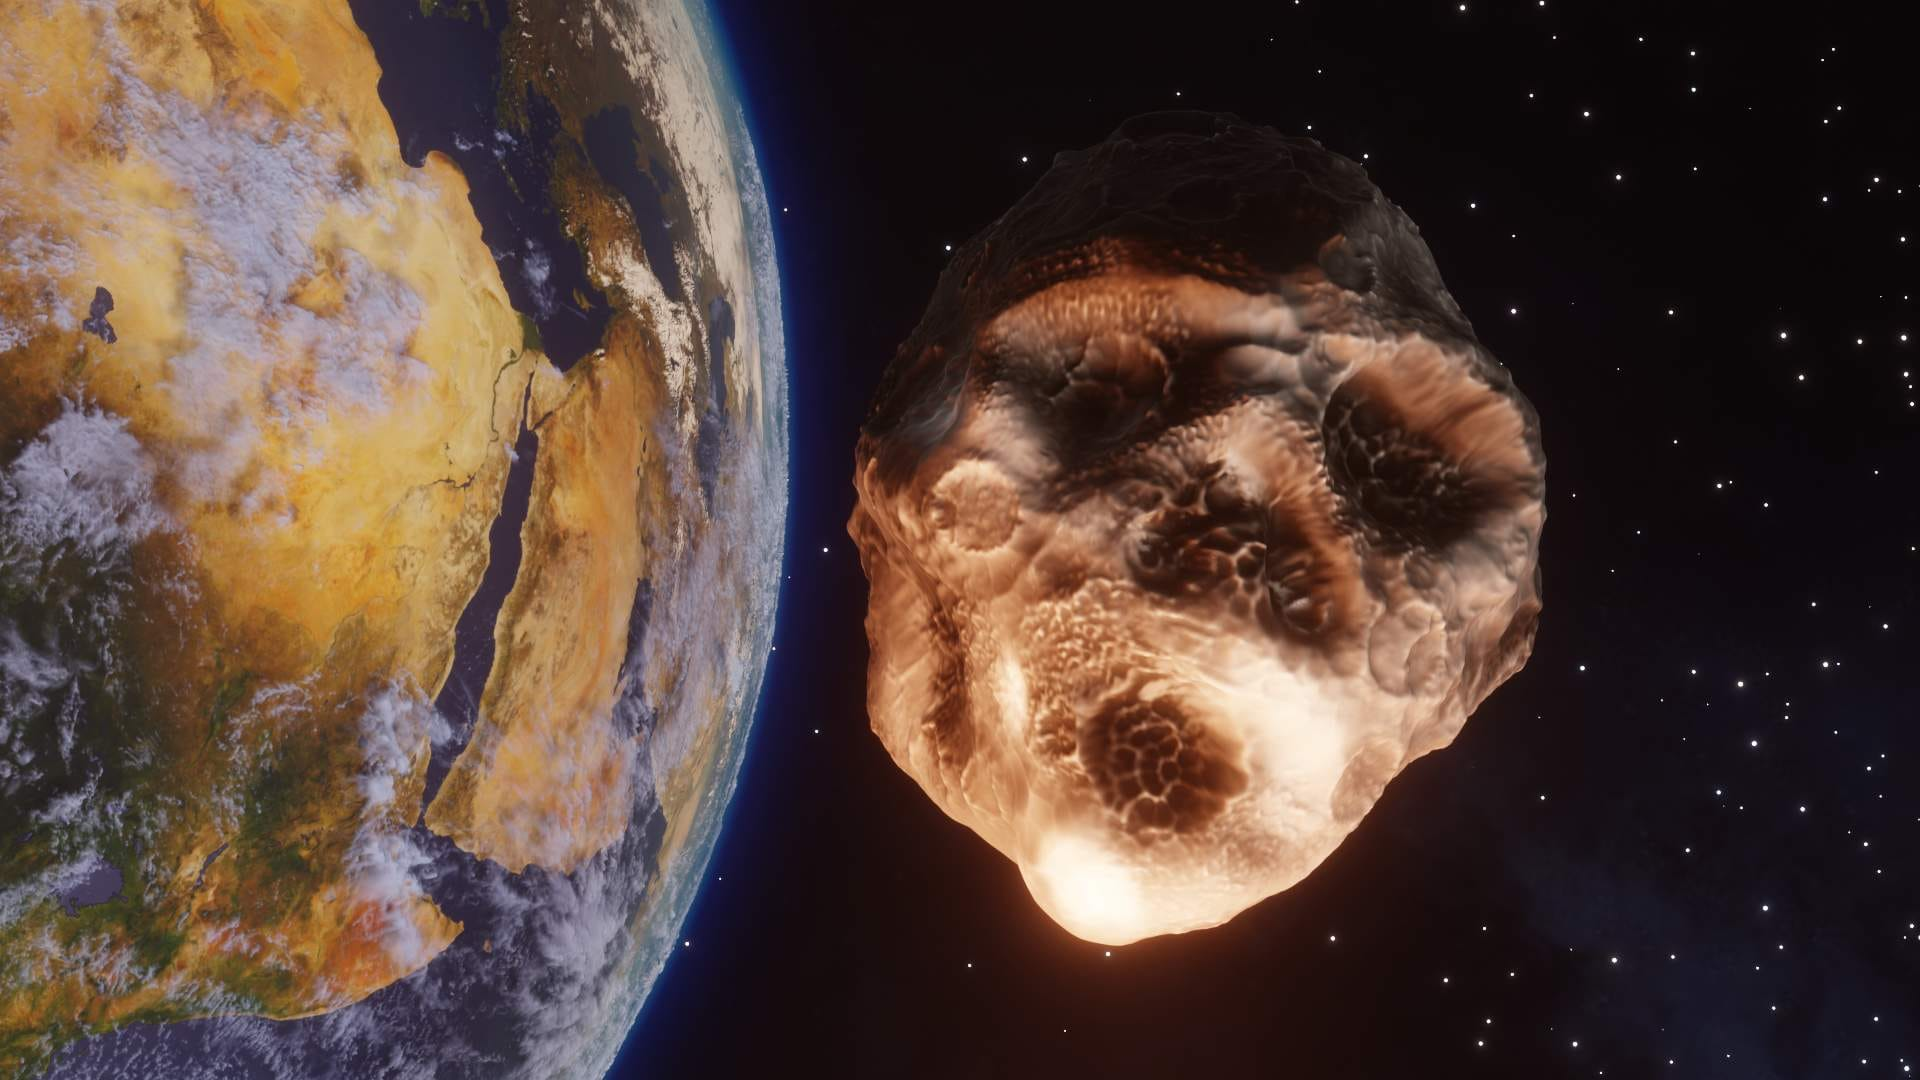 Asteroid 2015 TB145 passing near Earth